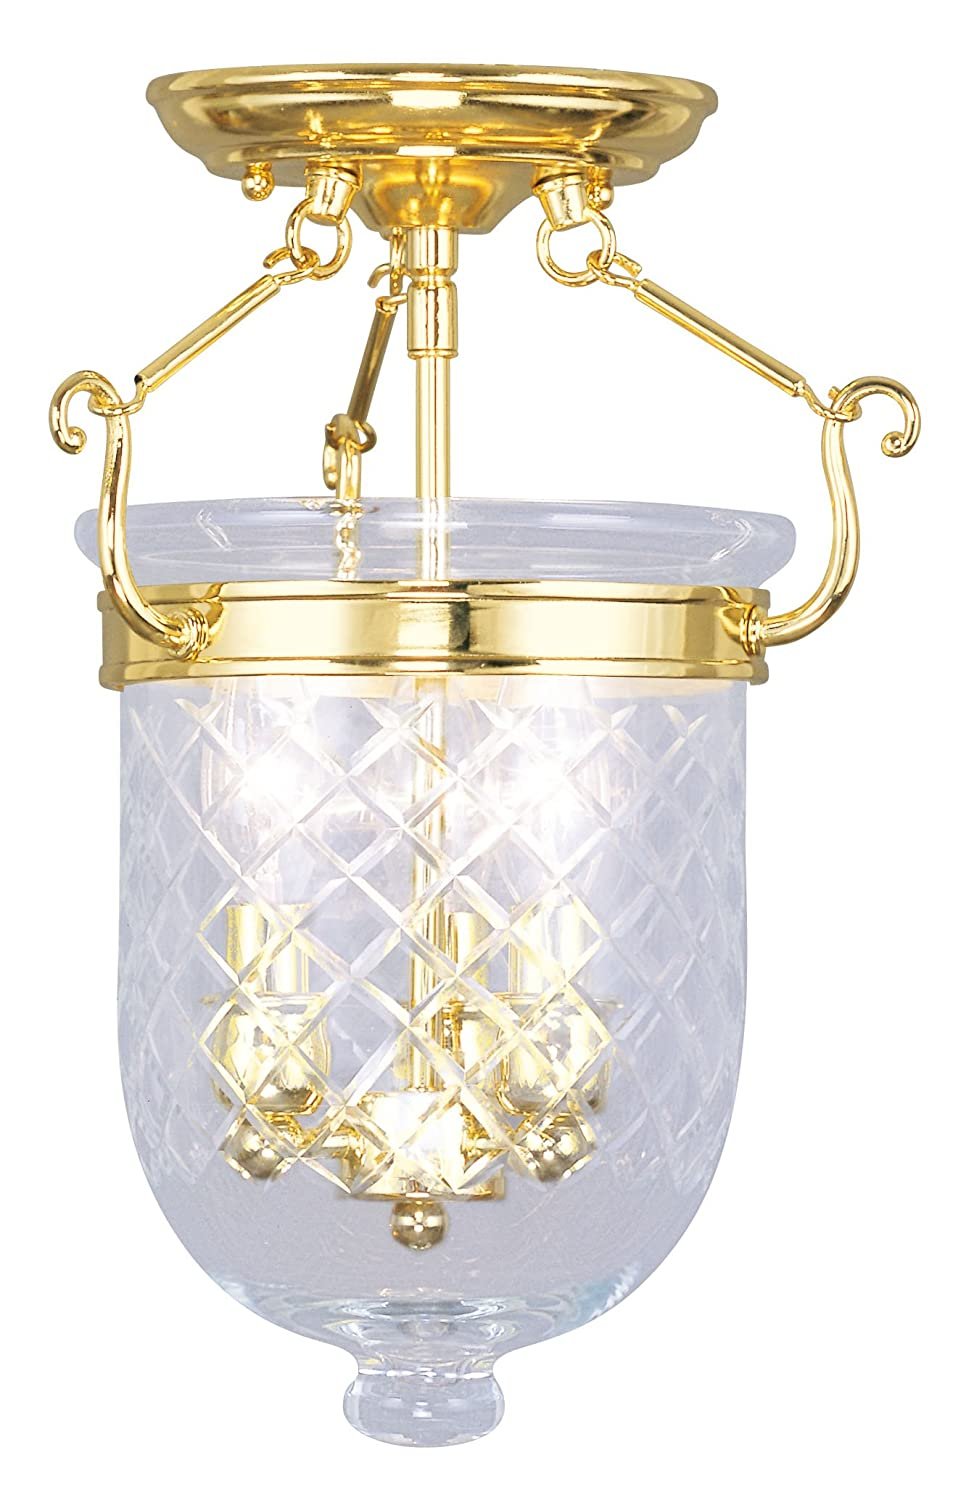 Polished Brass Livex Lighting 5071-02 Flush Mount with Clear Diamond Glass Shades